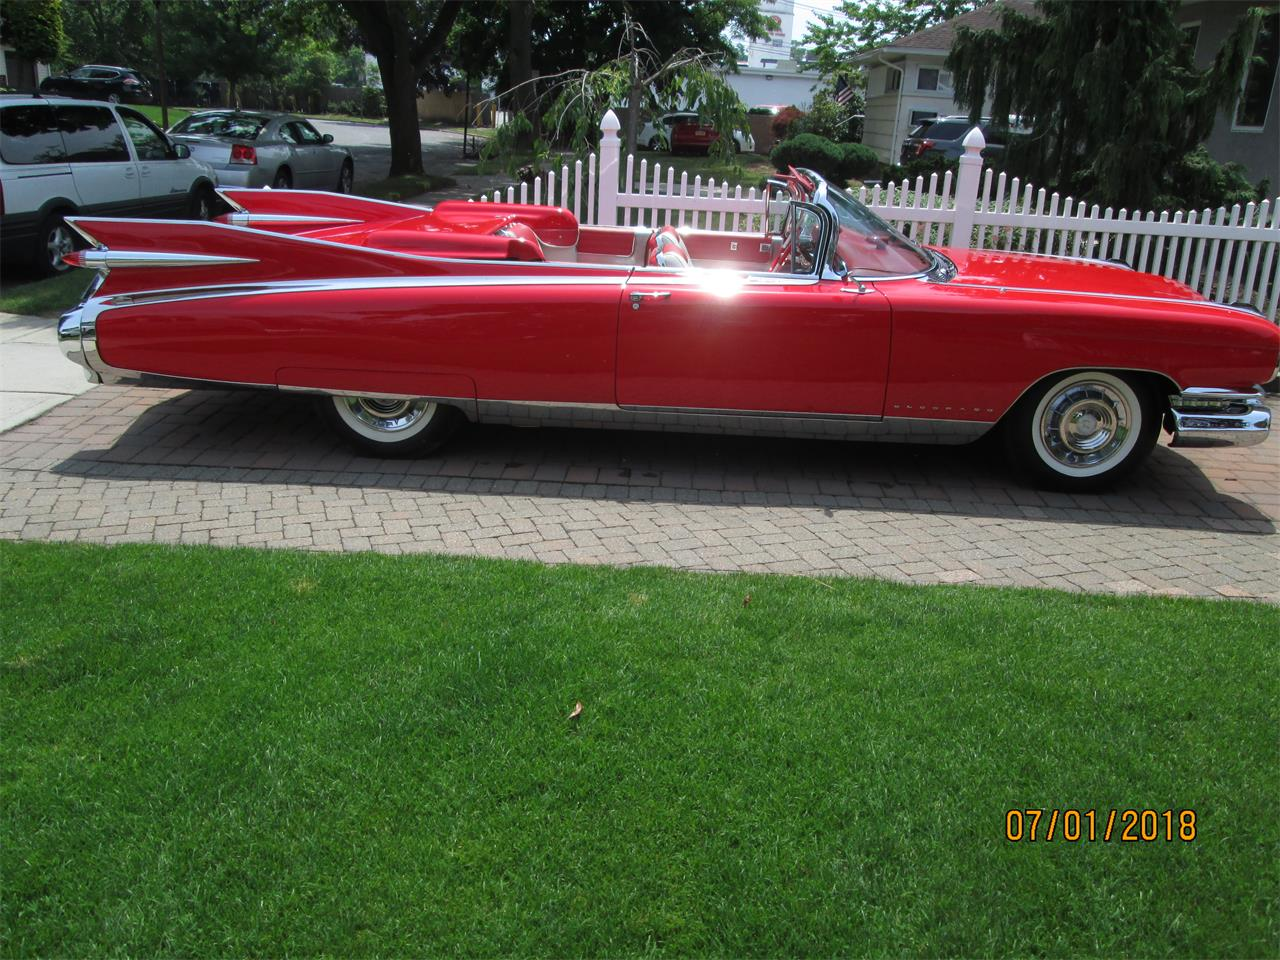 For Sale: 1959 Cadillac Eldorado Biarritz in East Meadow, New York